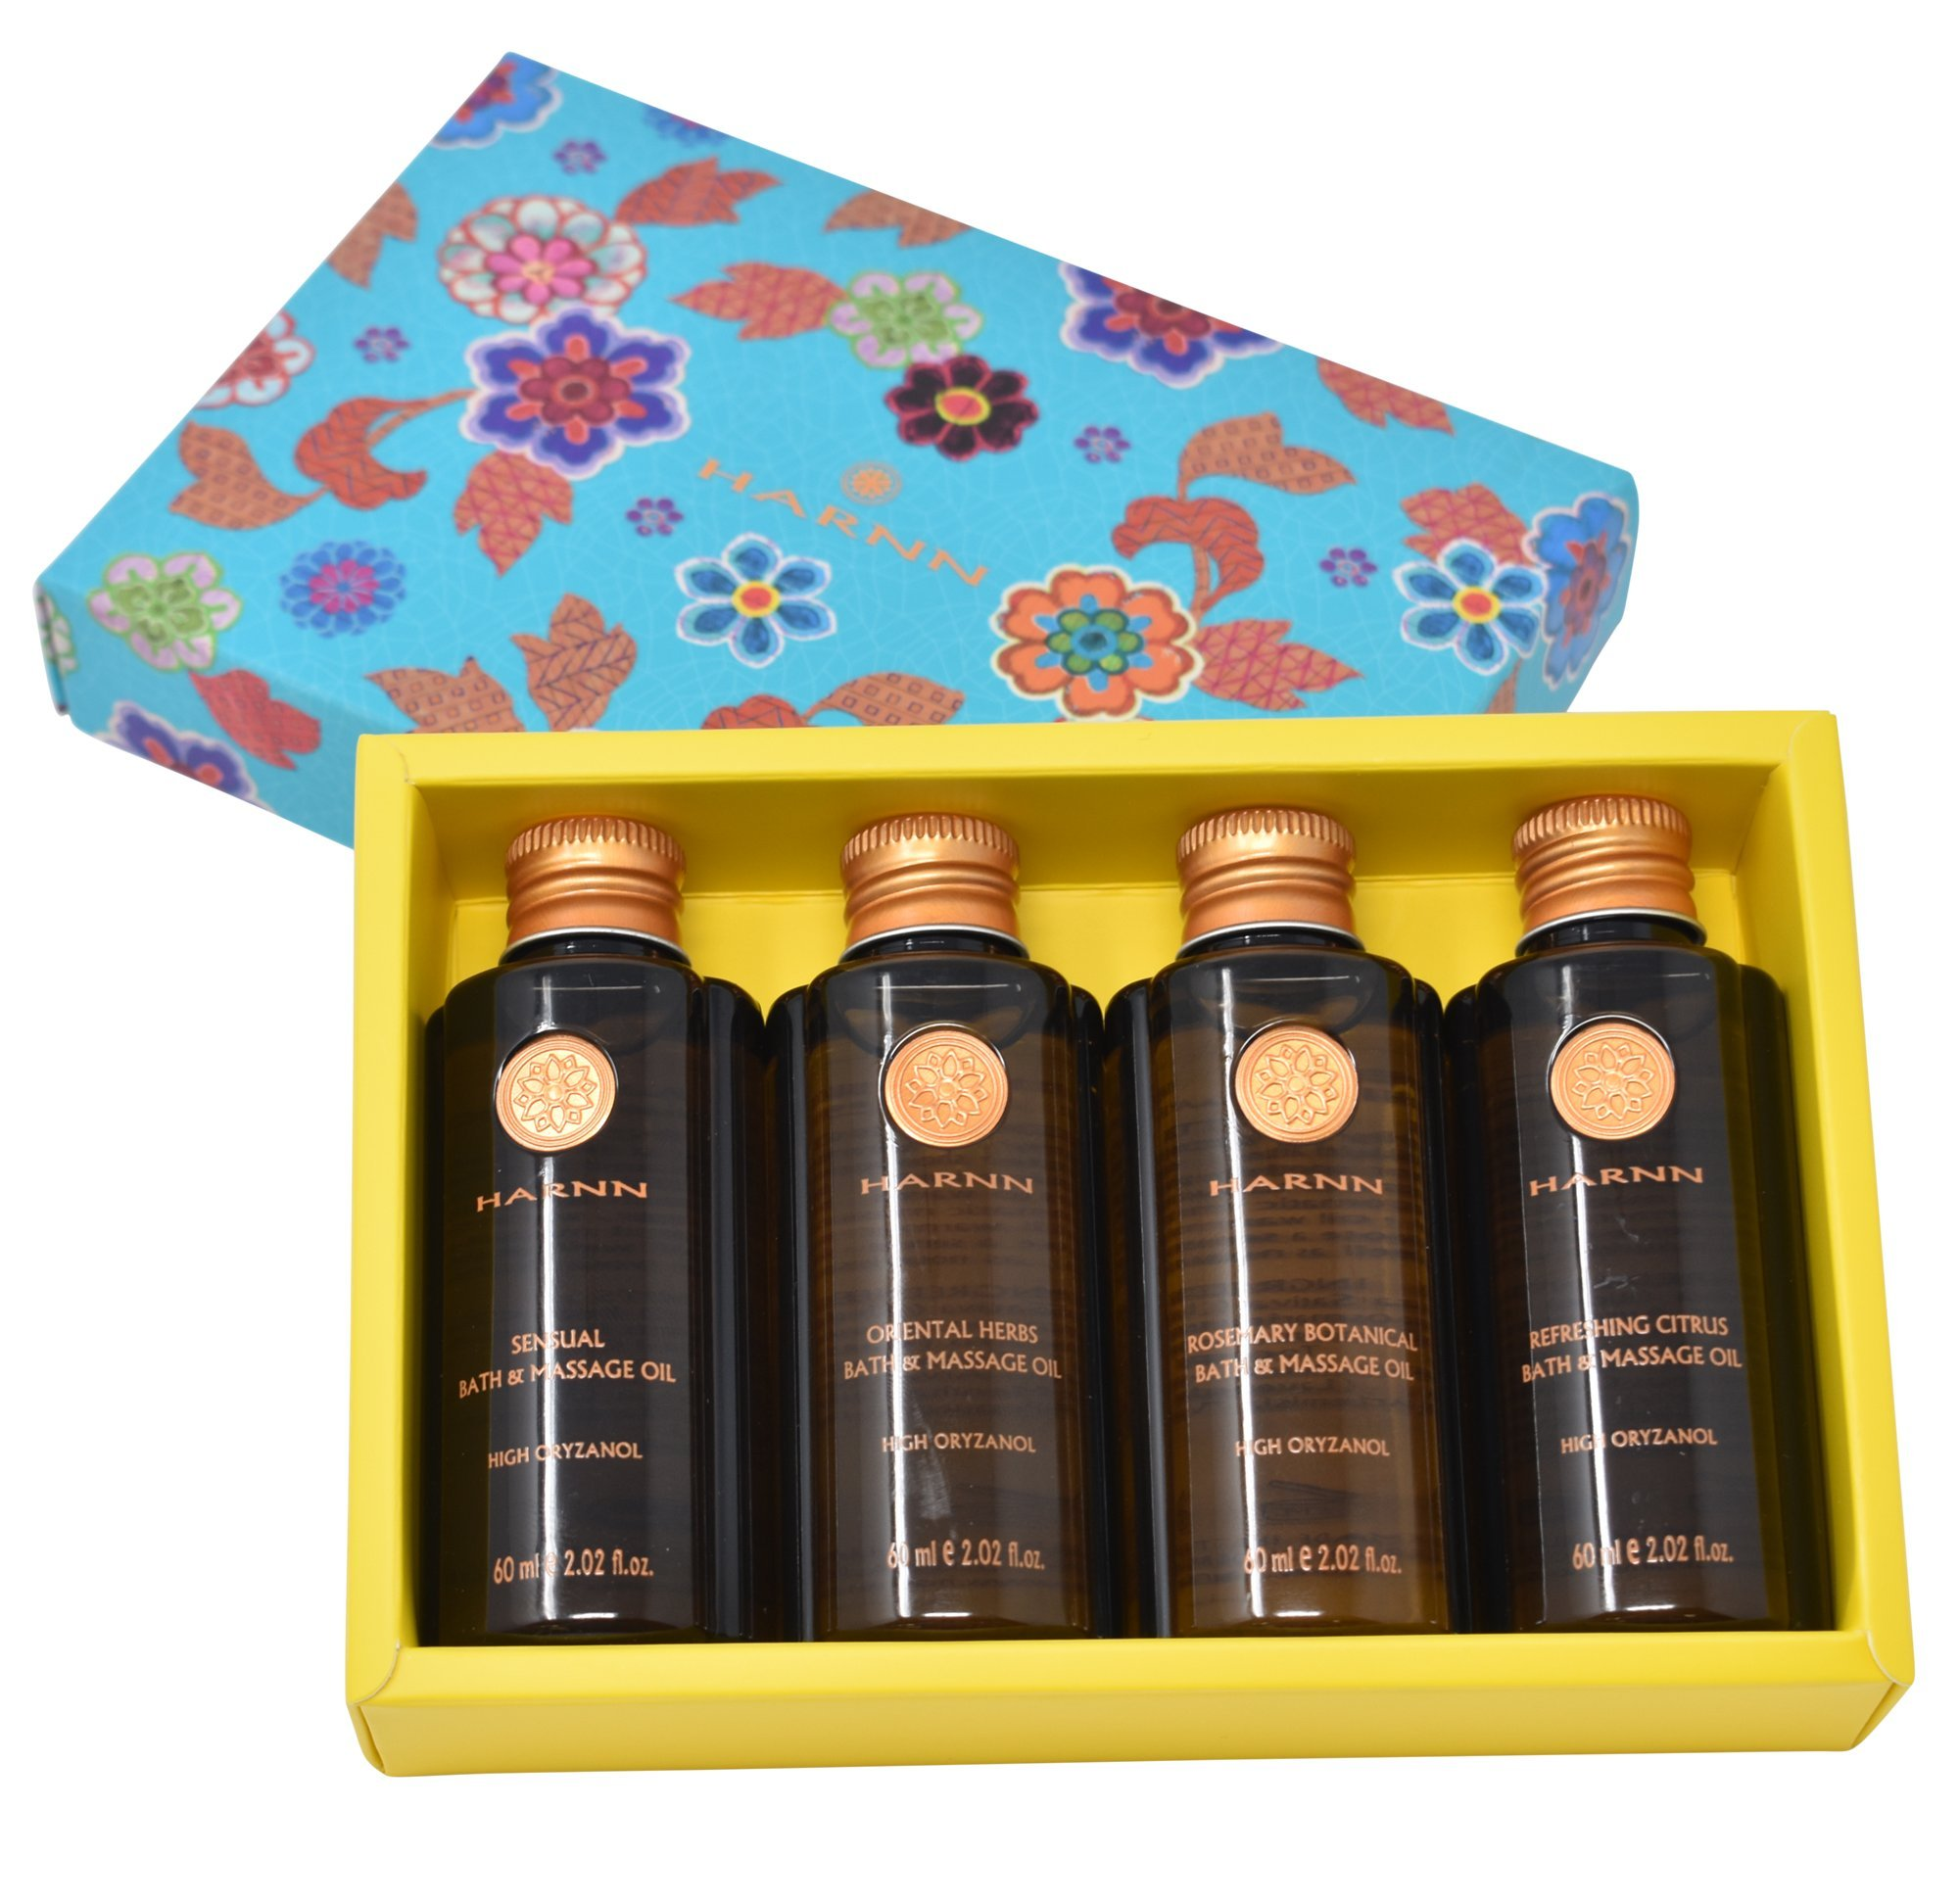 Harnn Euphoria Natural Massage Oils Set Sensual Massage Oils for Skin Therapy with Herbs, Rosemary and Citrus (2.02 fl. Oz) Set of Four,